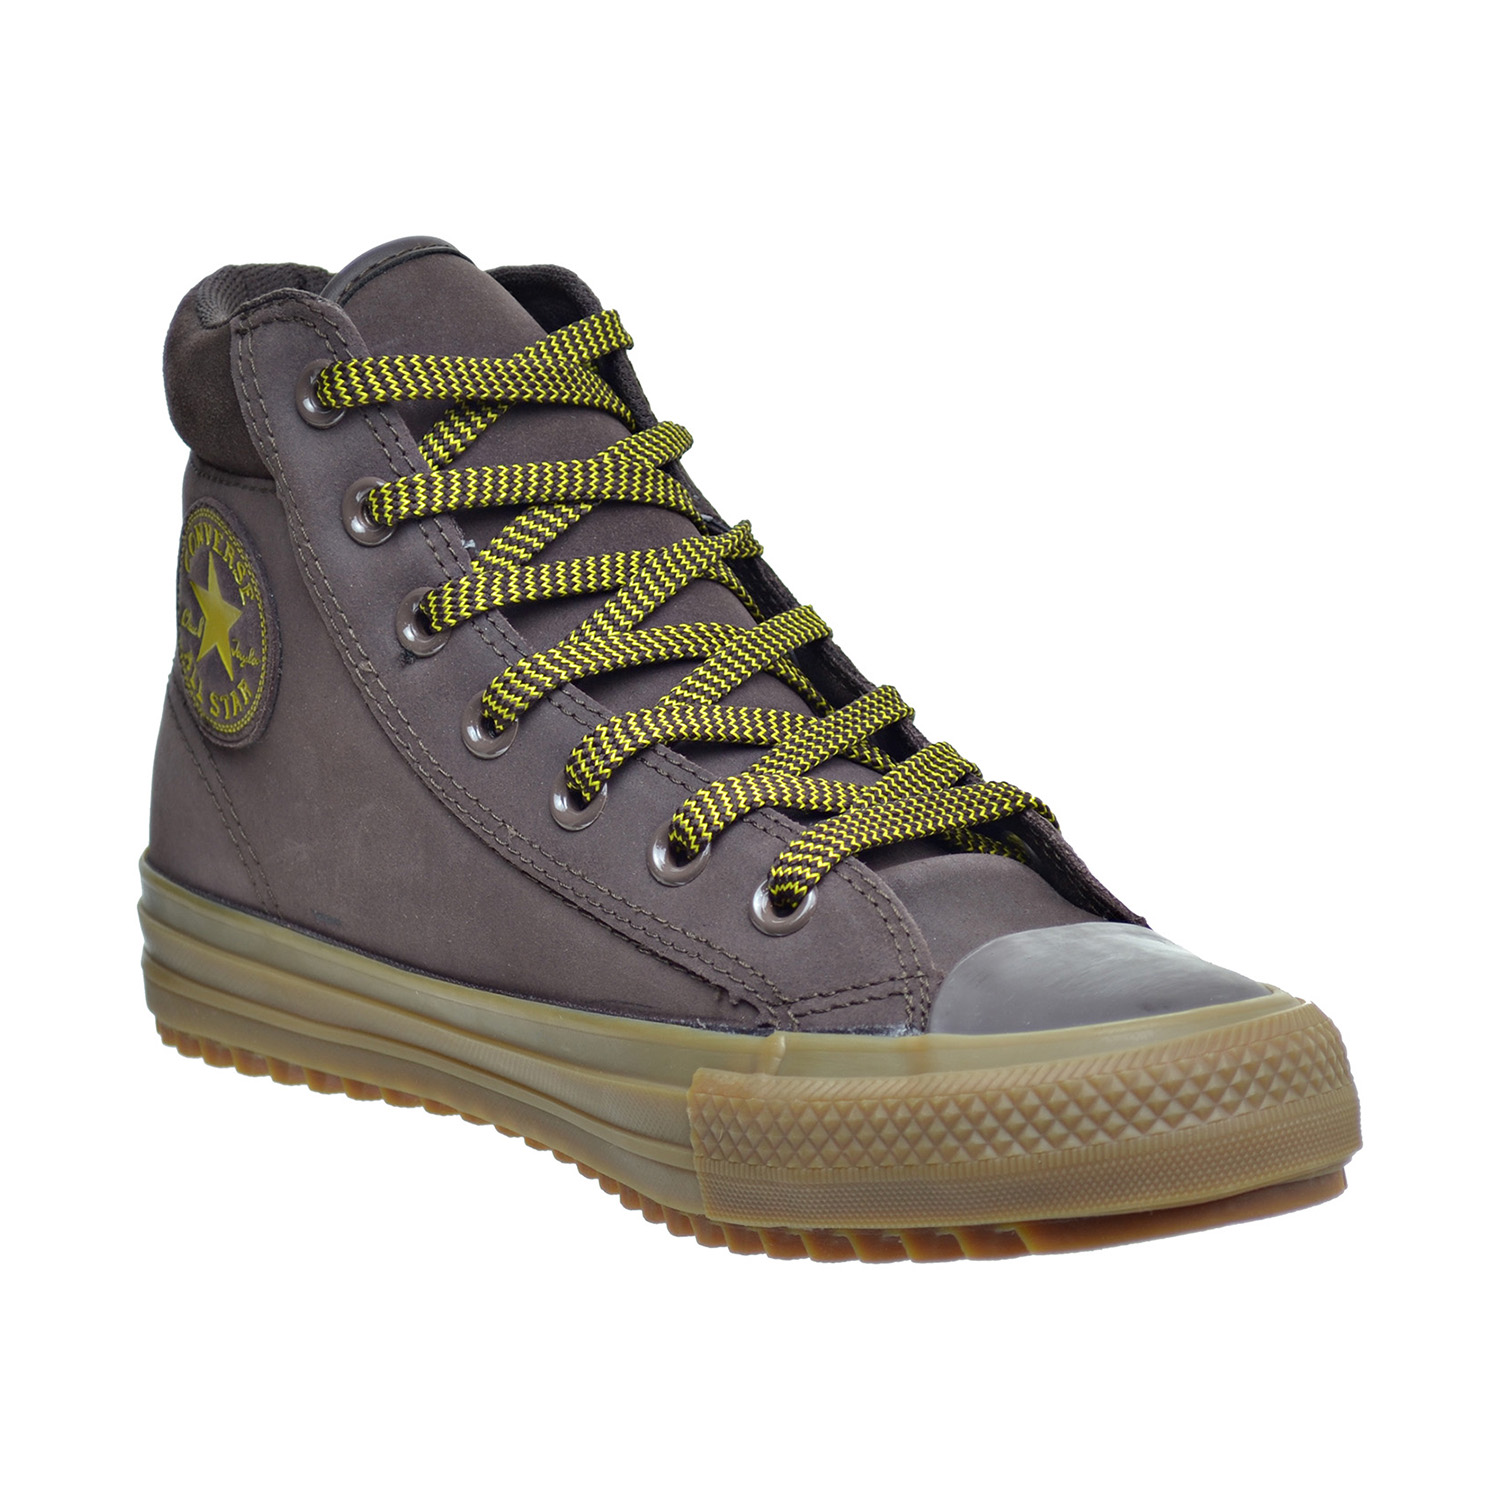 ed3eed50f2b9ff Details about Converse Chuck Taylor All Star PC High Top Men s Boots Burnt  Umber Lemon 153674C